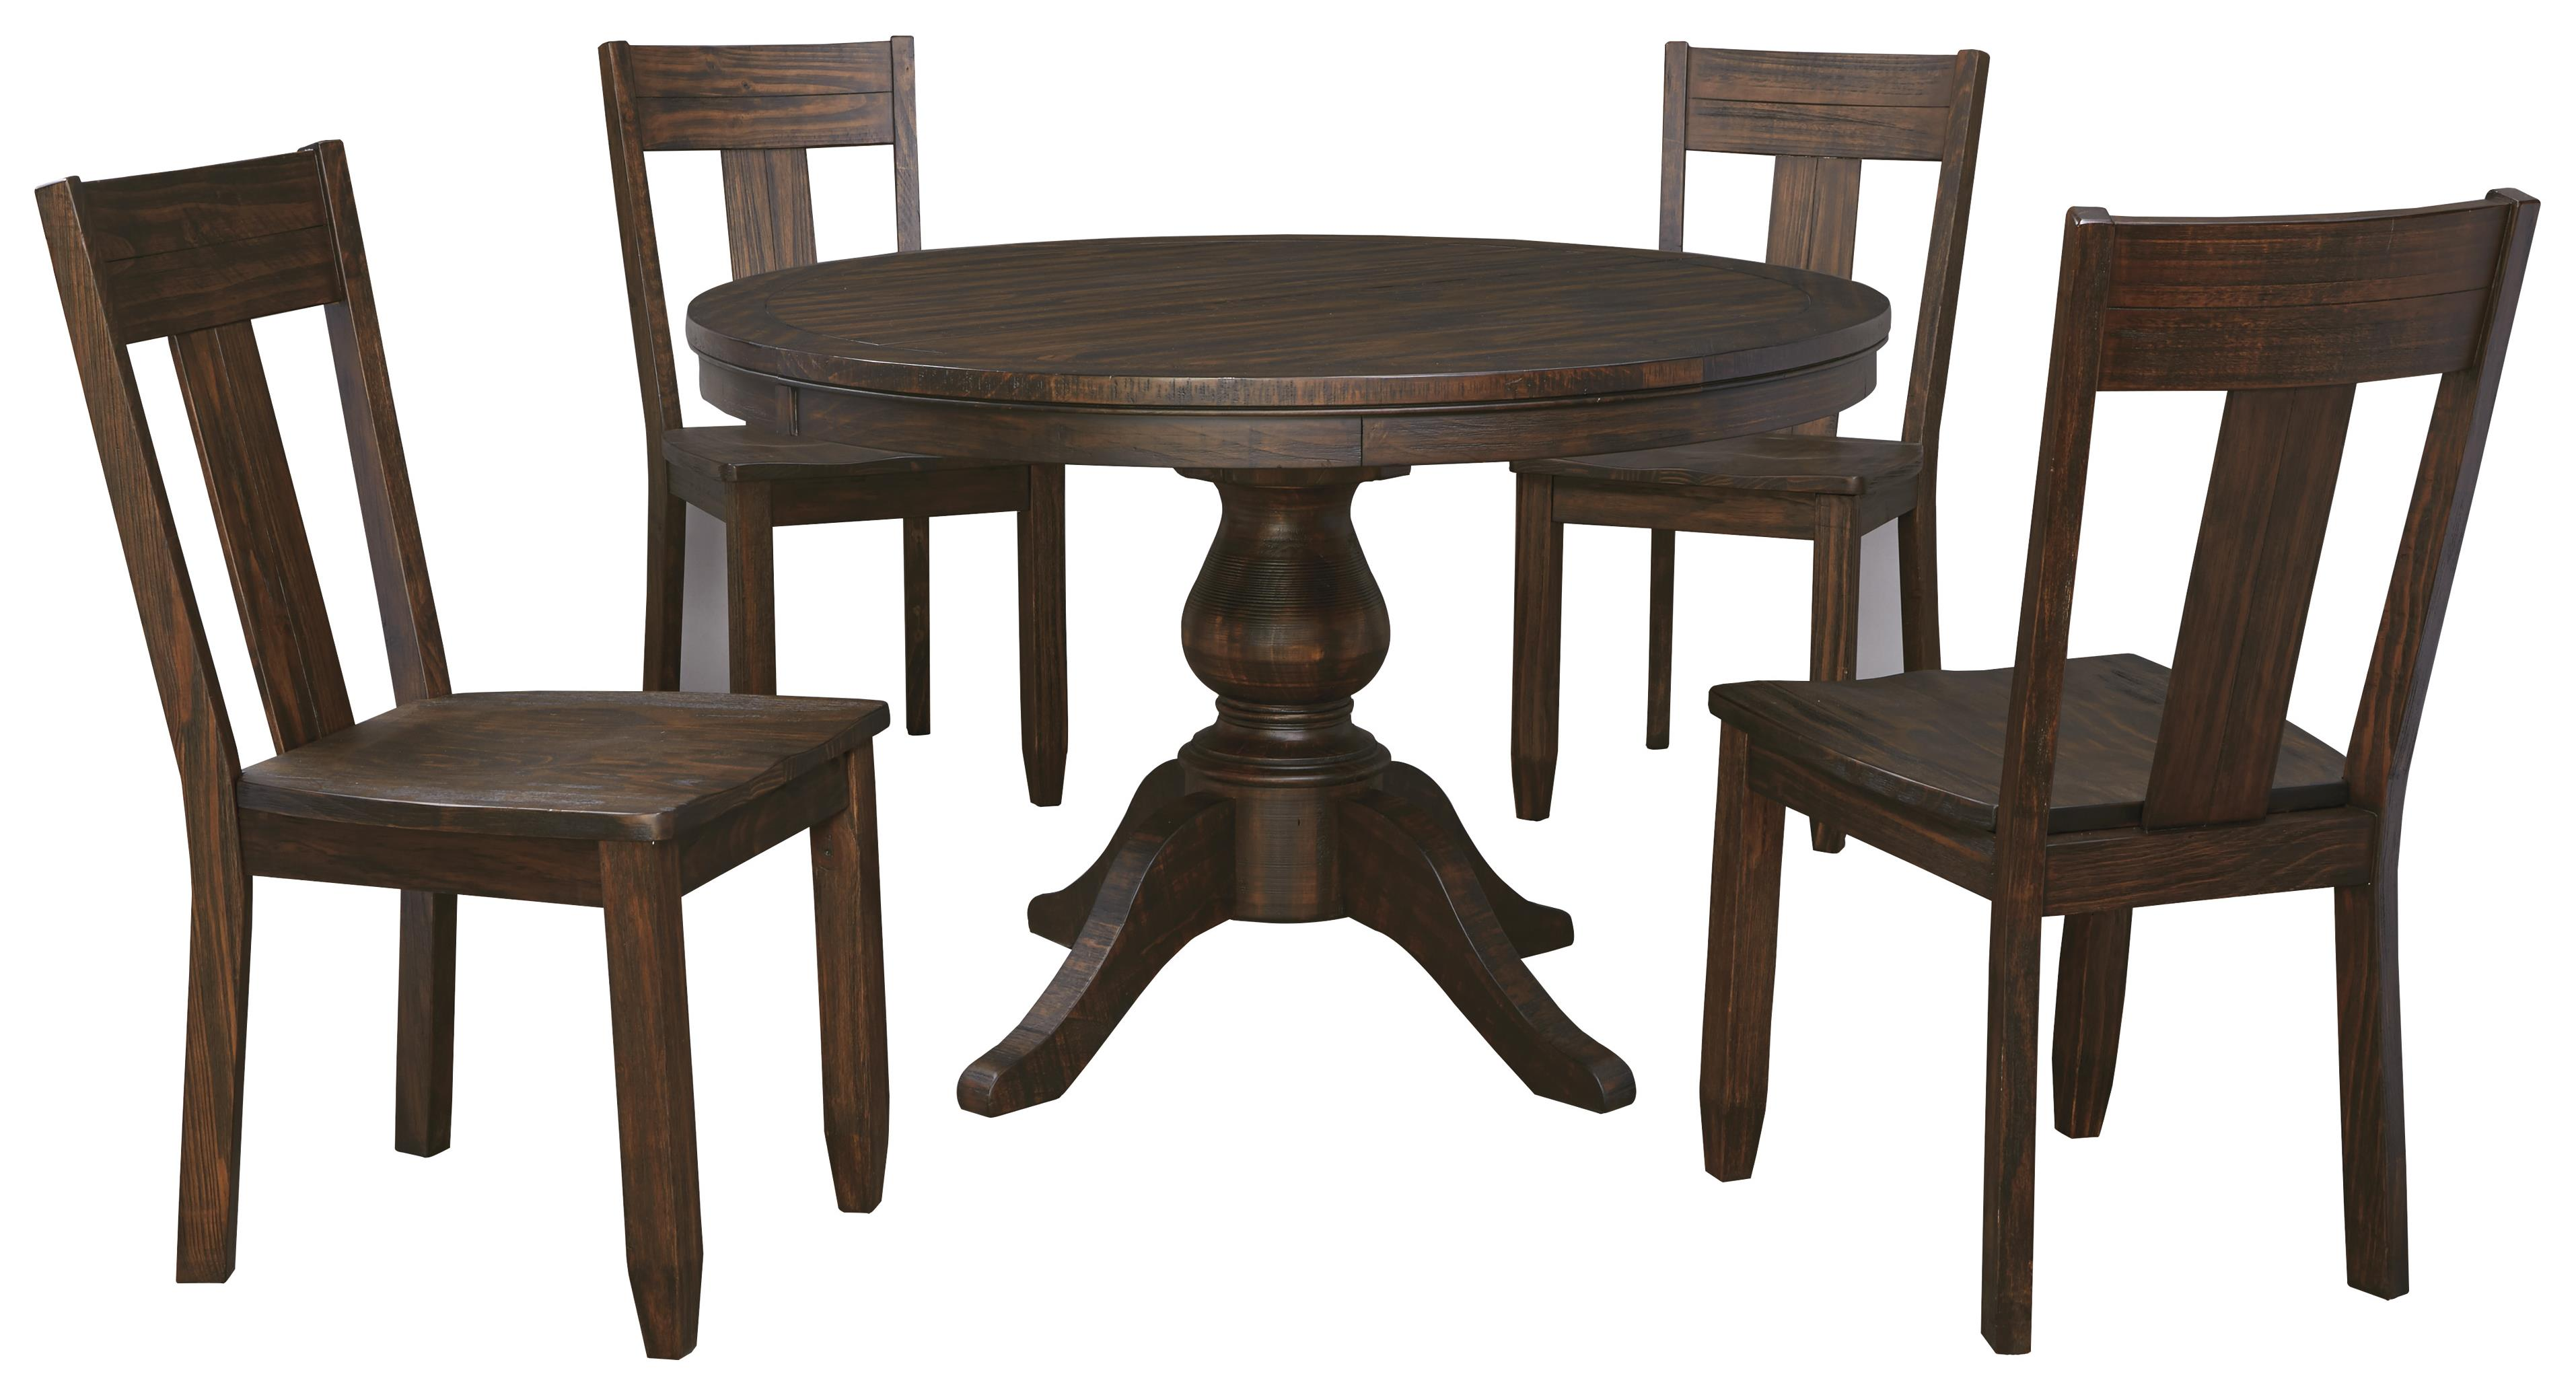 5-Piece Round Dining Table Set with Wood Seat Side Chairs by ...